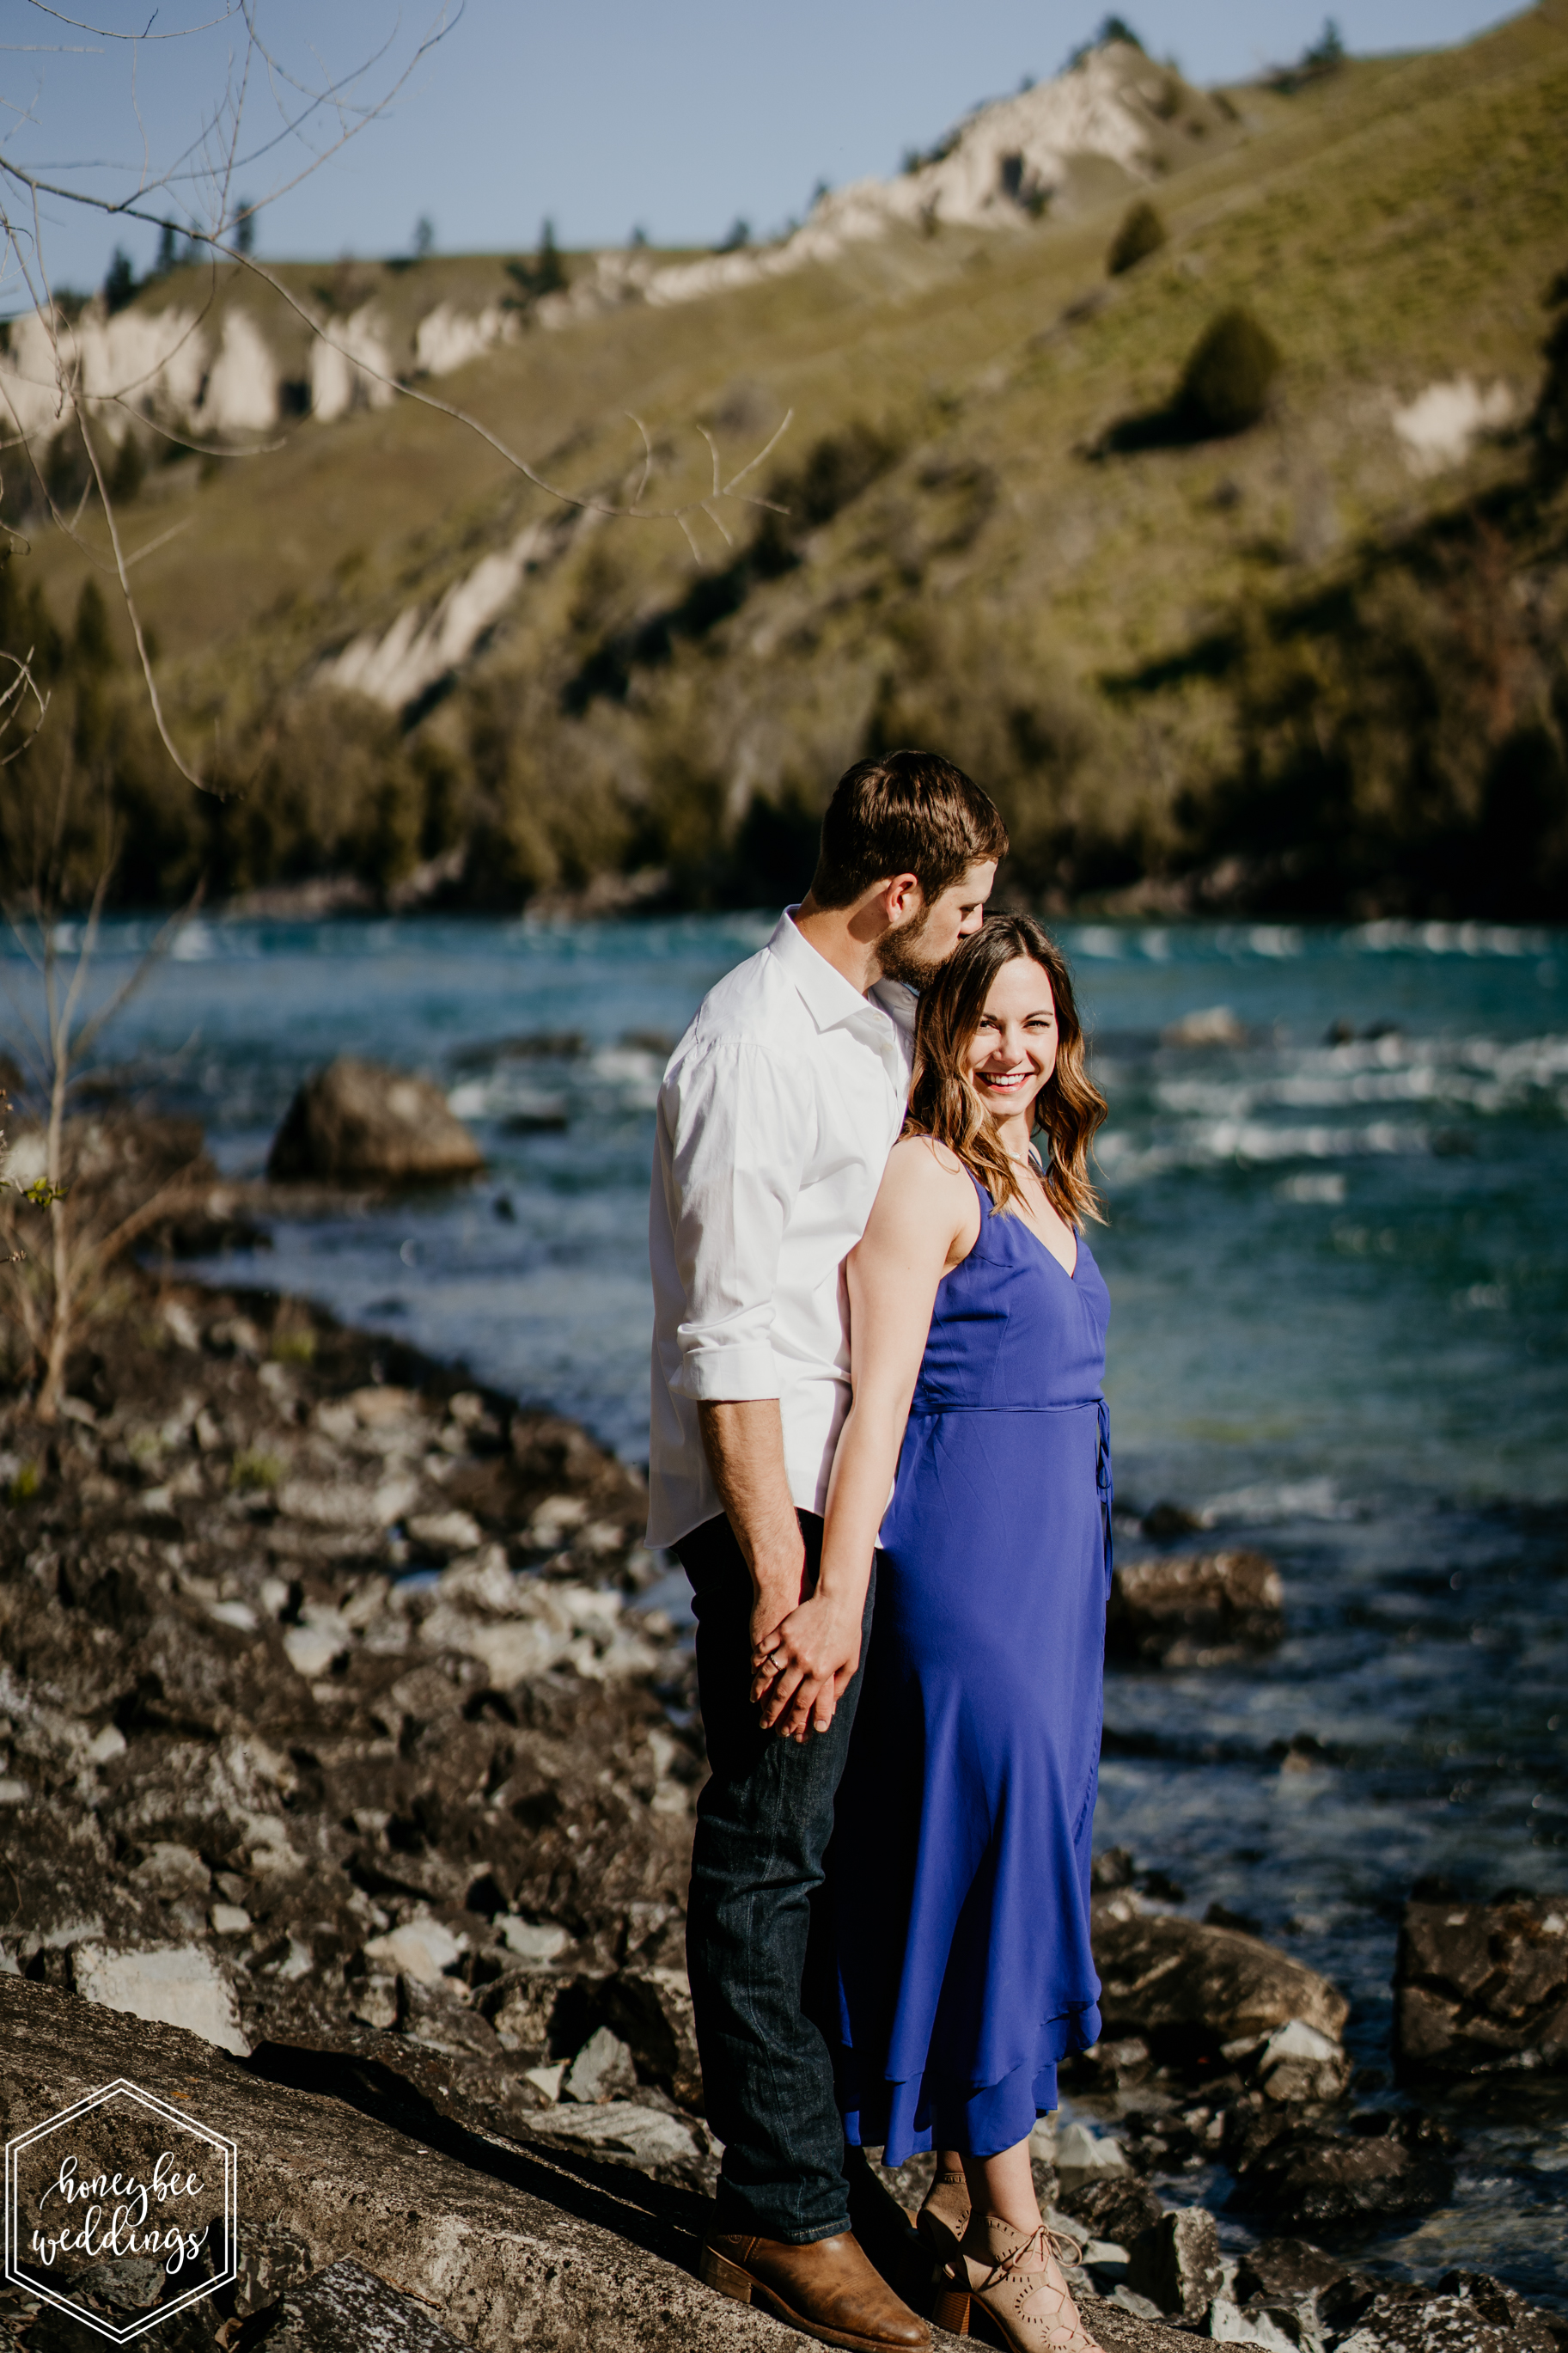 017Montana Wedding Photographer_Polson Engagement Session_Carrie & Matt_Honeybee Weddings_May 11, 2019-52.jpg